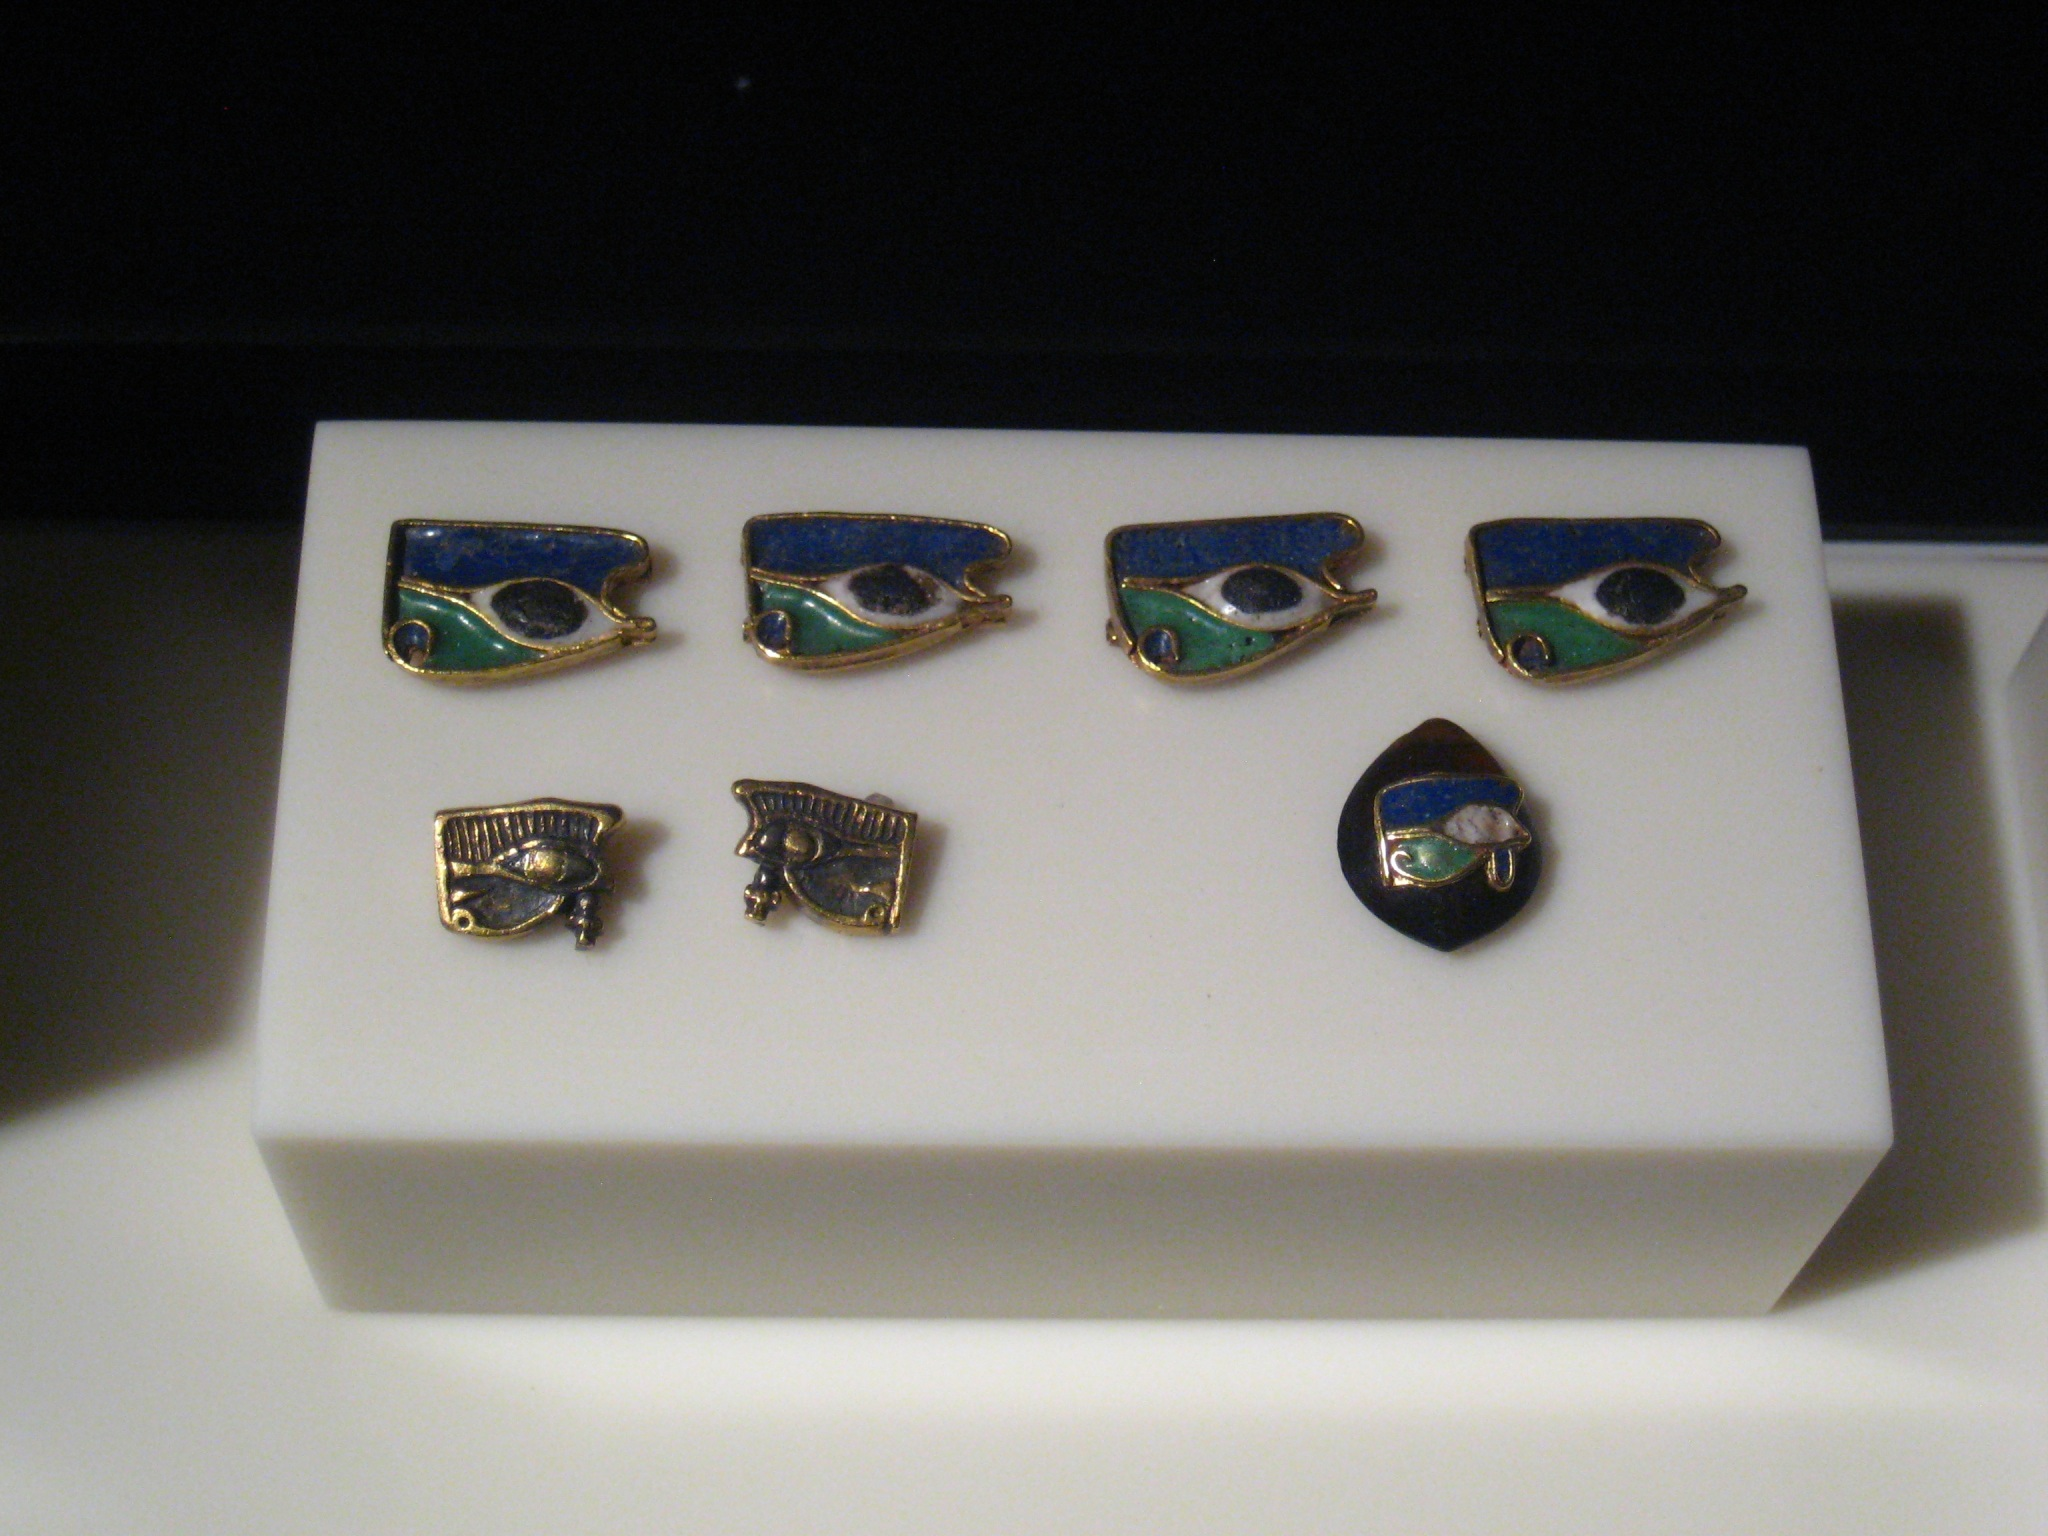 Wadjet eye charms from a bracelet found in Queen Amanishakheto's pyramid